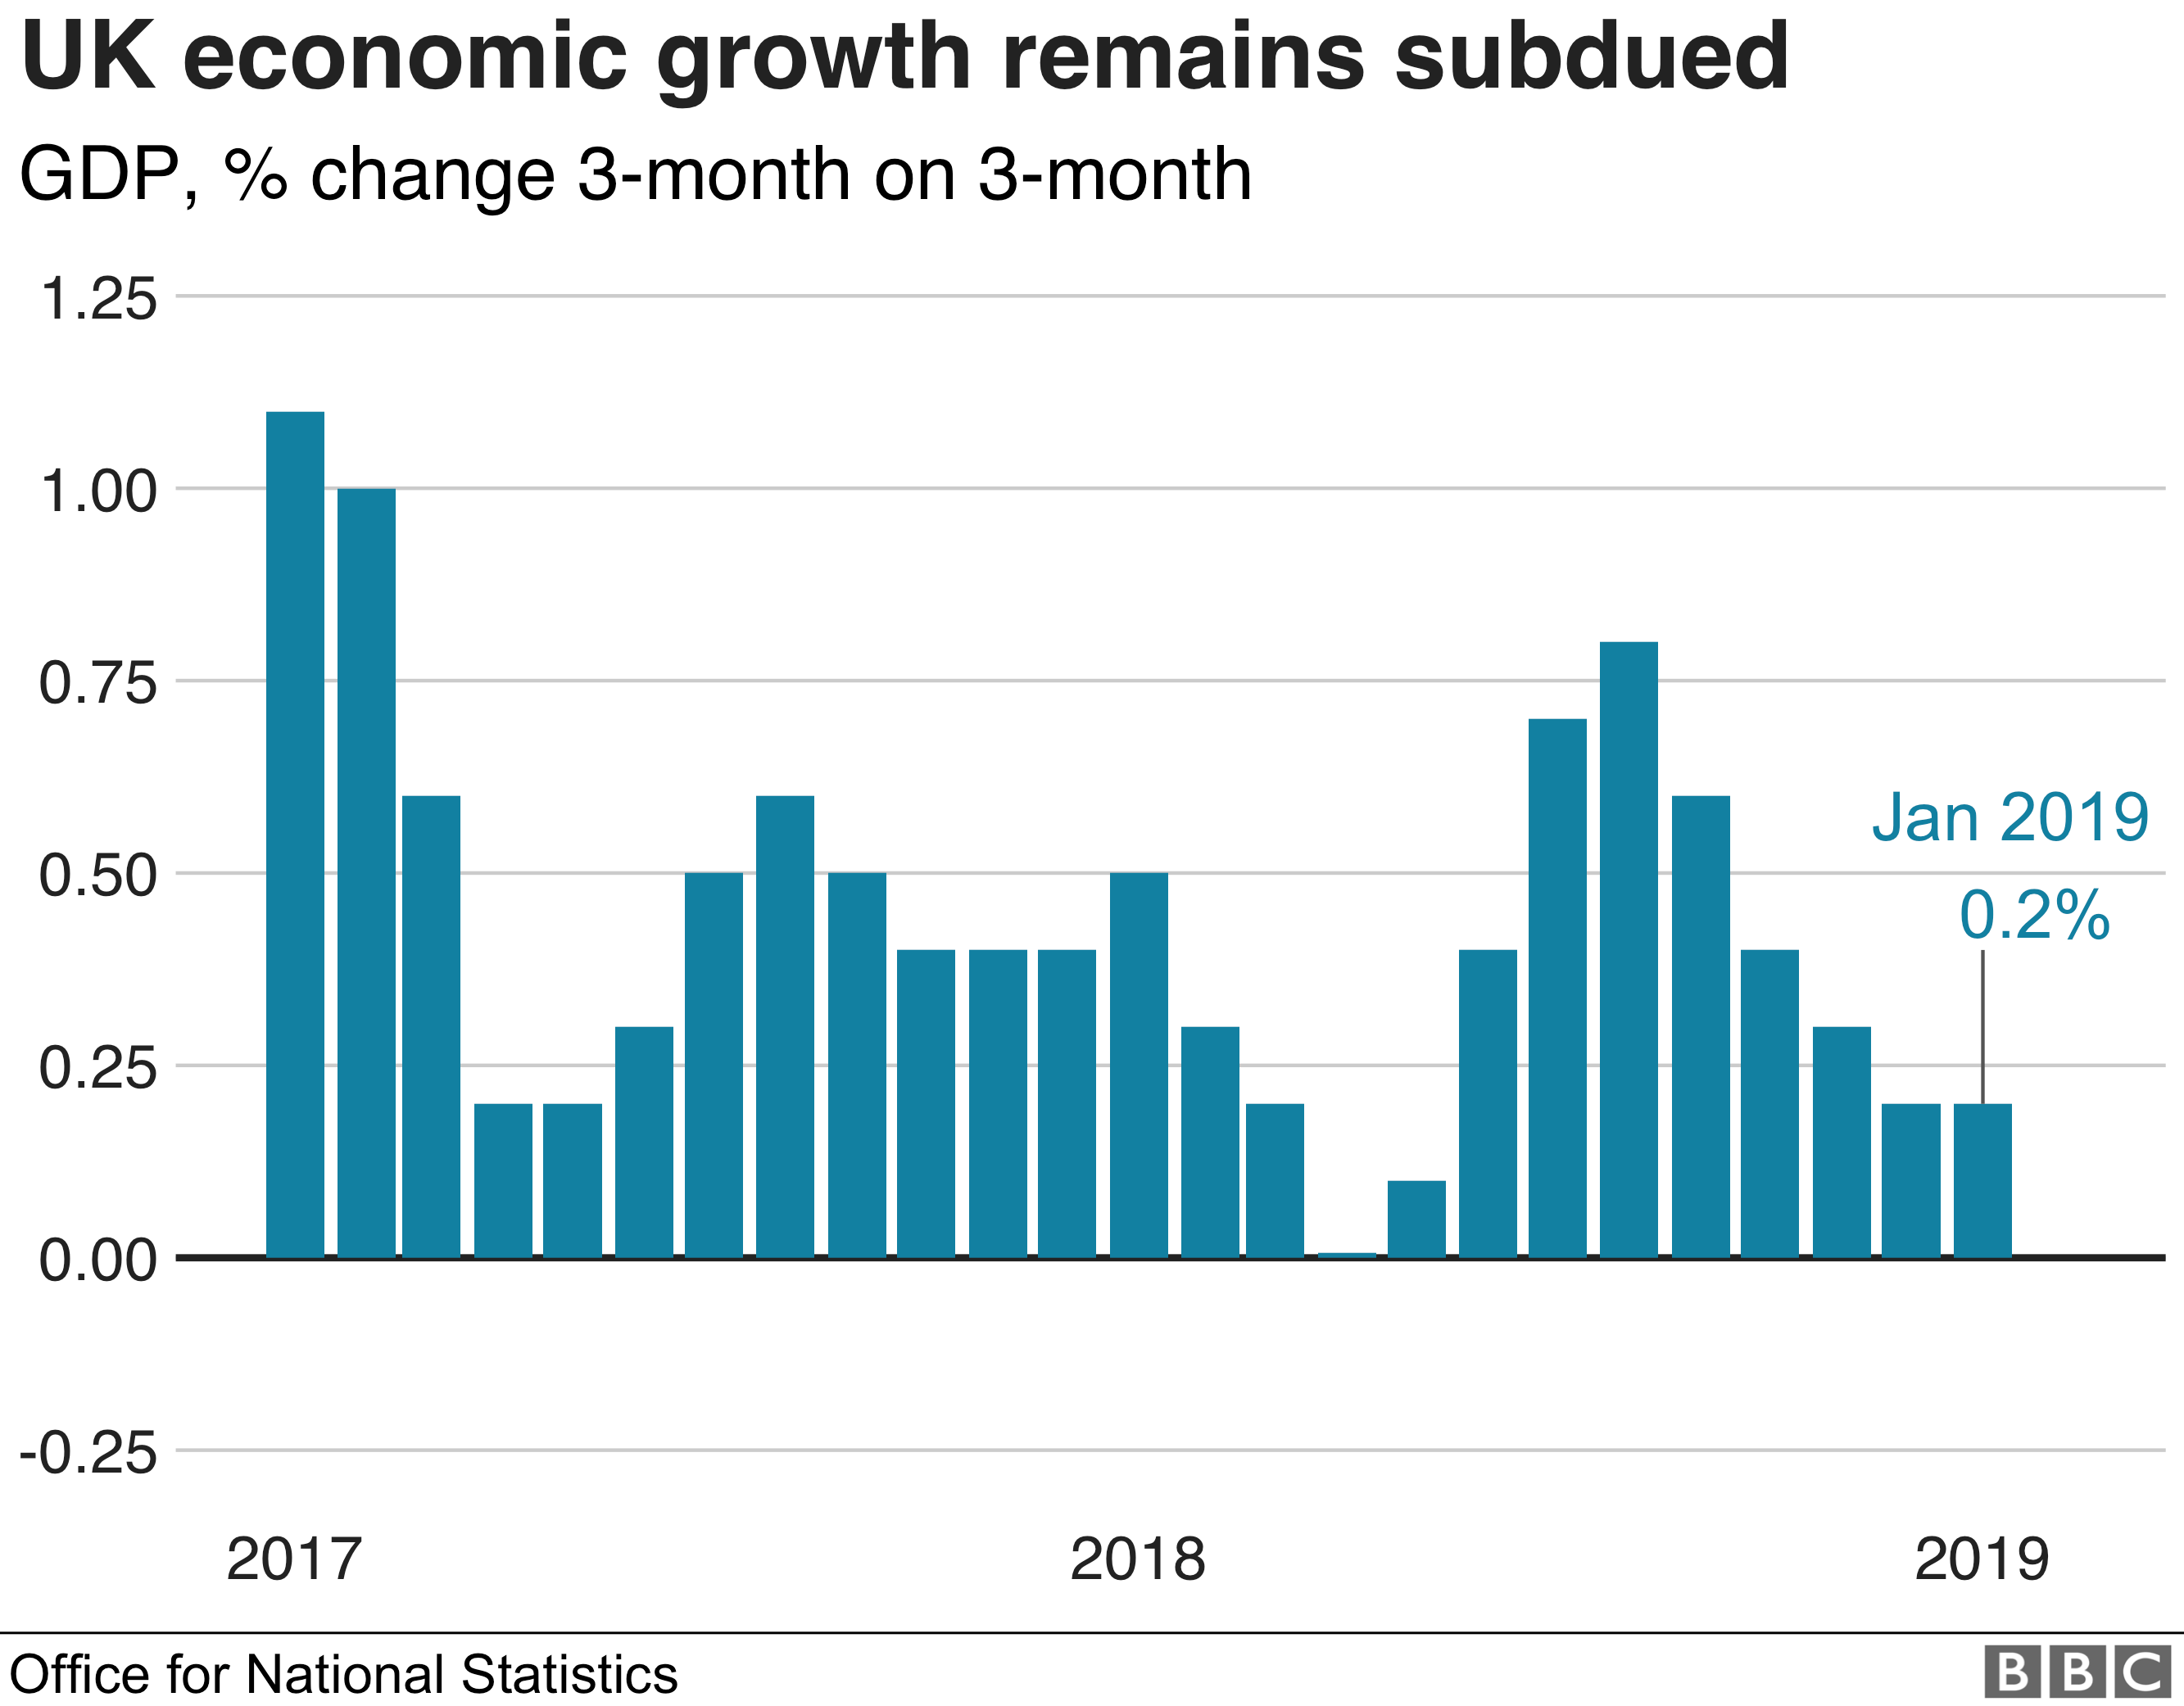 UK economic growth in the three months to January